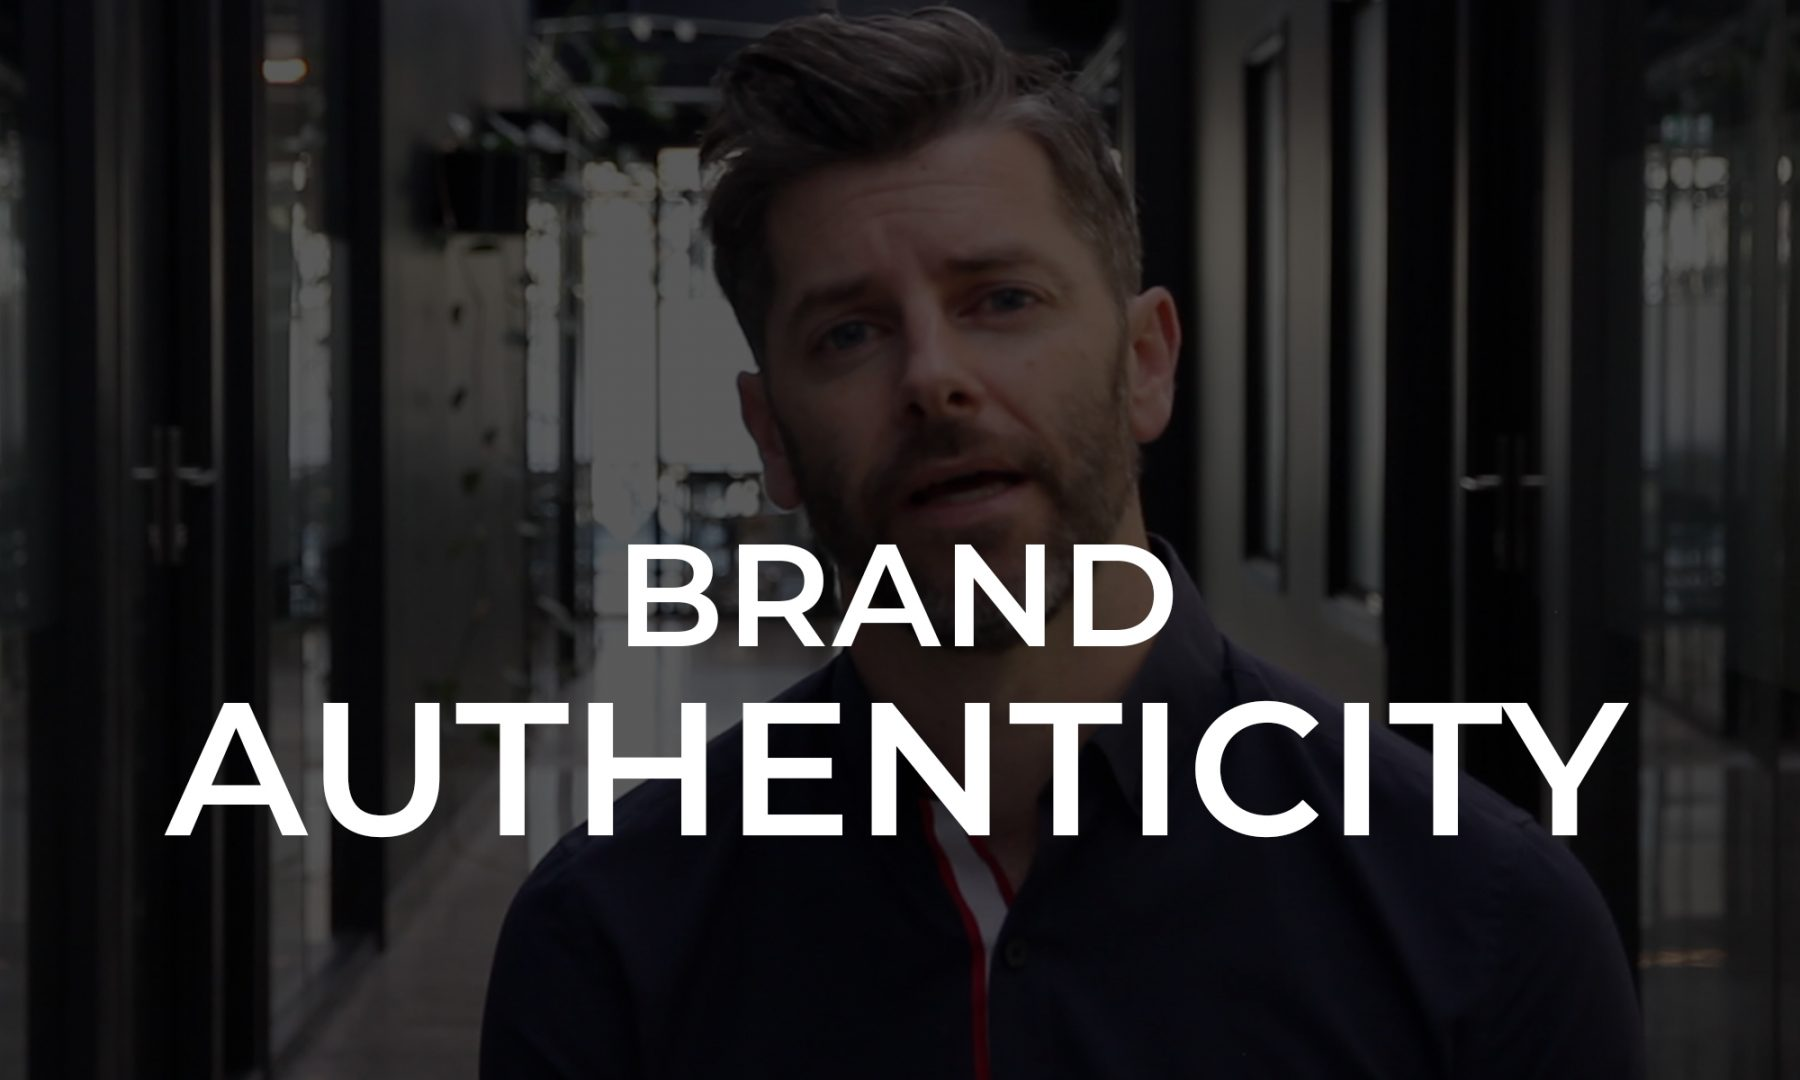 ReBrand Authenticity